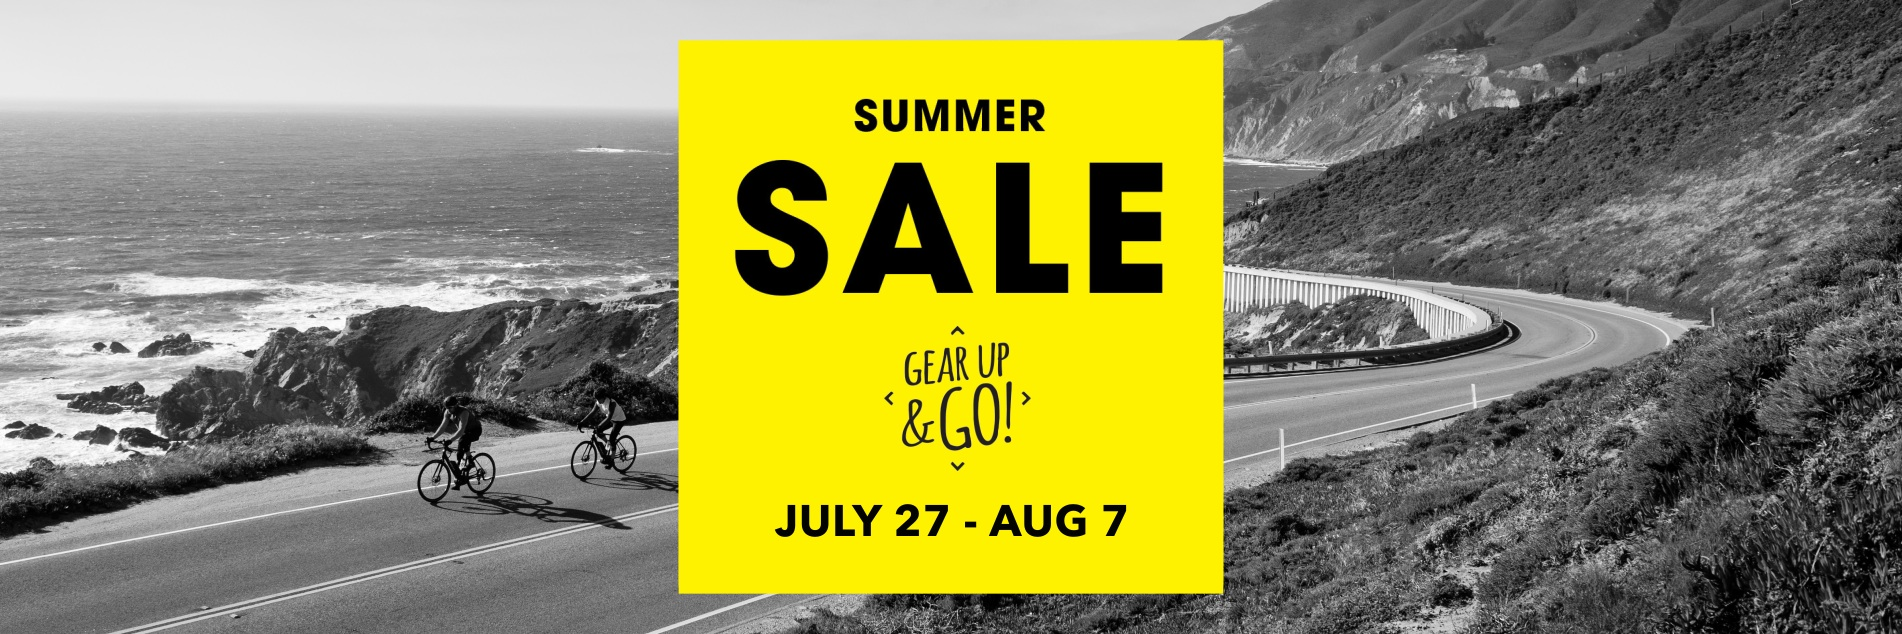 Summer Sale at West Point Cycles July 27th - Aug 7th